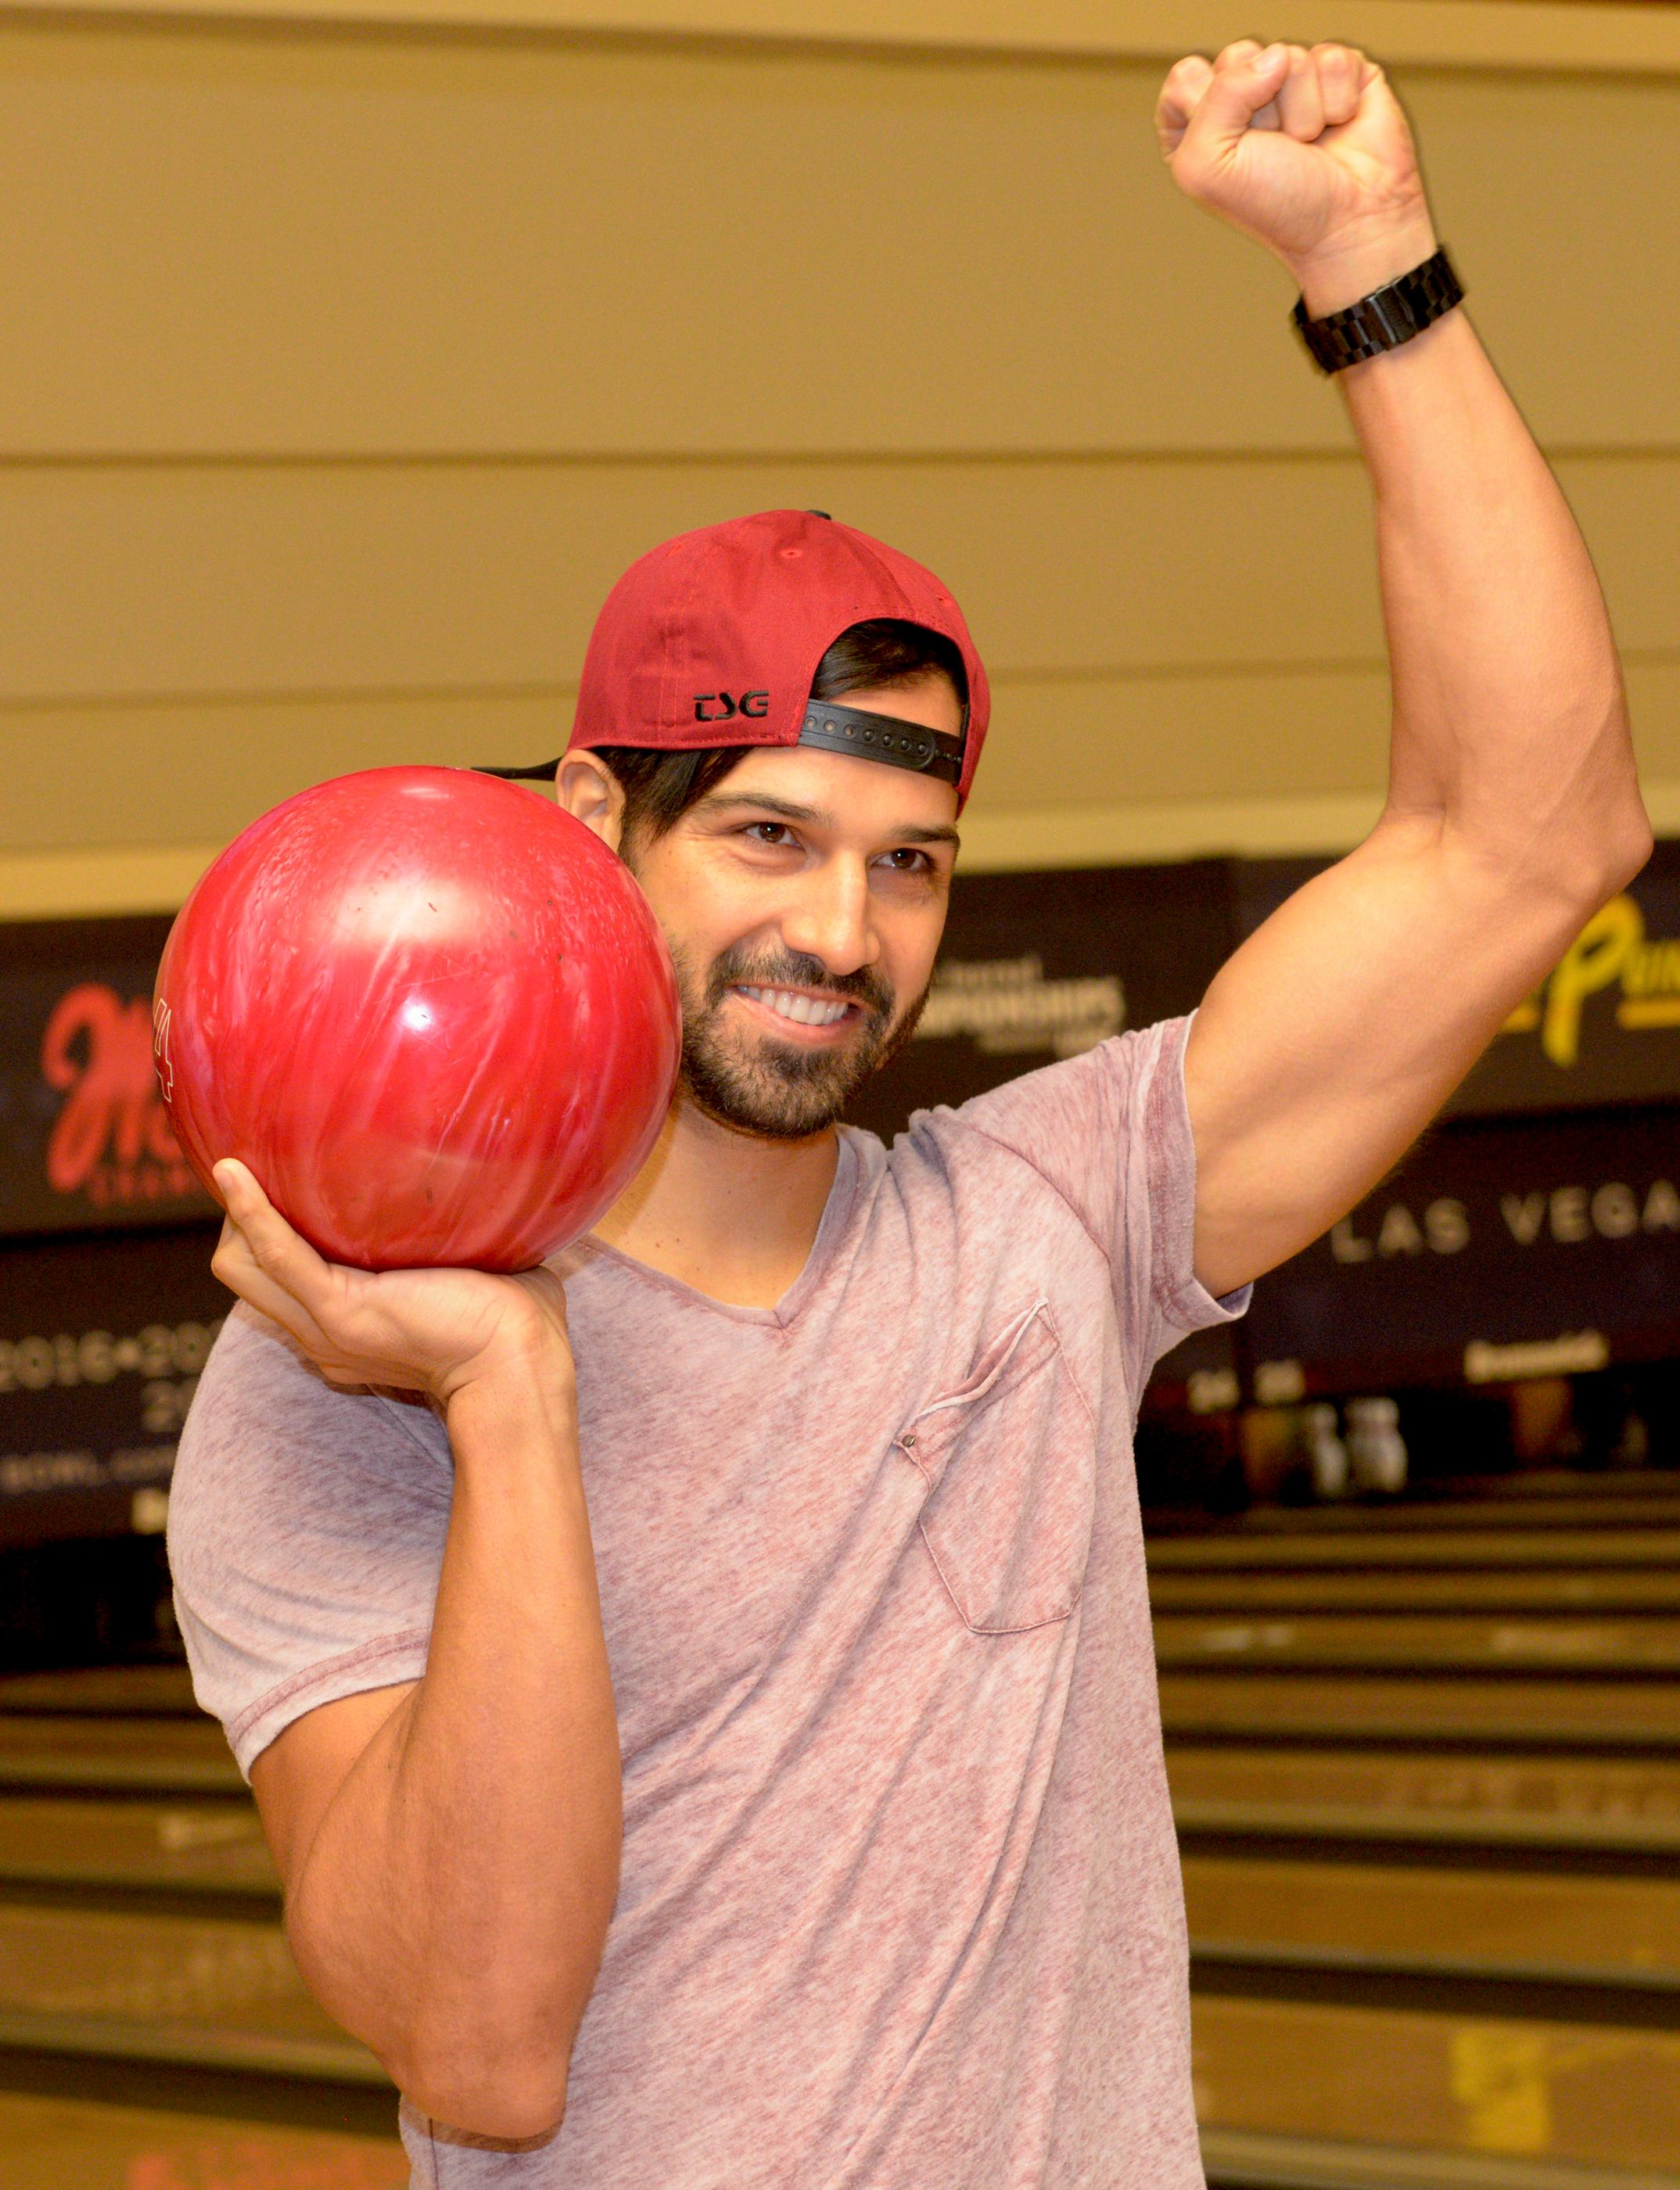 Epicurean Charitable Foundation hosts Strikes for Scholarships Bowling Tournament at the South Point Hotel & Casino. This event provides scholarships and unique mentorships for local students passionate about pursuing a career in hospitality or culinary arts. In this photo newly crowned Nevada BMX Champion Ricardo Laguna throws the first ball of the tournament. Sunday, August 27, 2017. [Glenn Pinkerton/Las Vegas News Bureau]